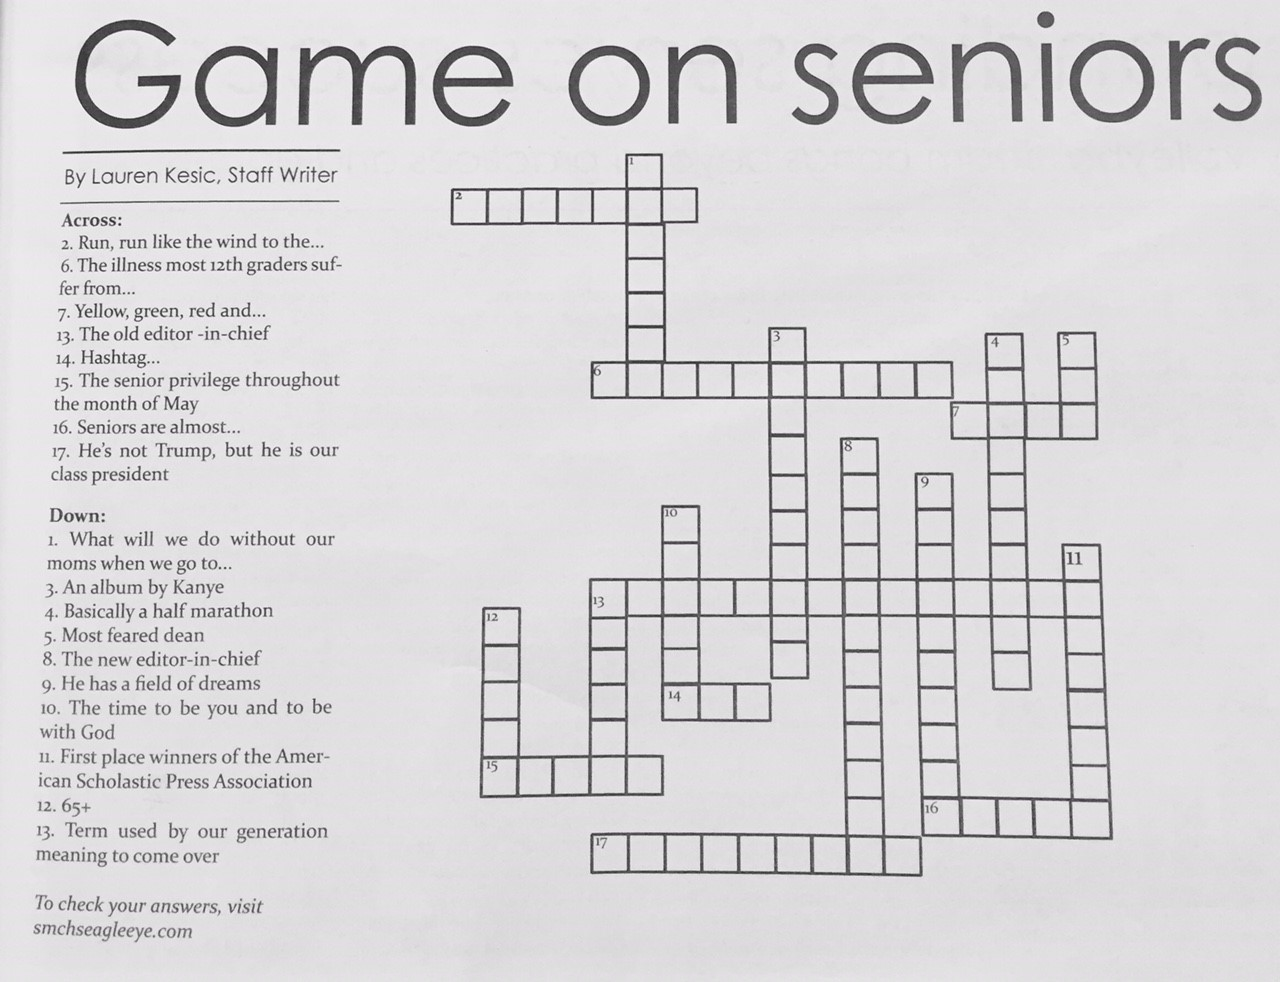 The Eagle Eye : Answers to print issue 6: crossword puzzle